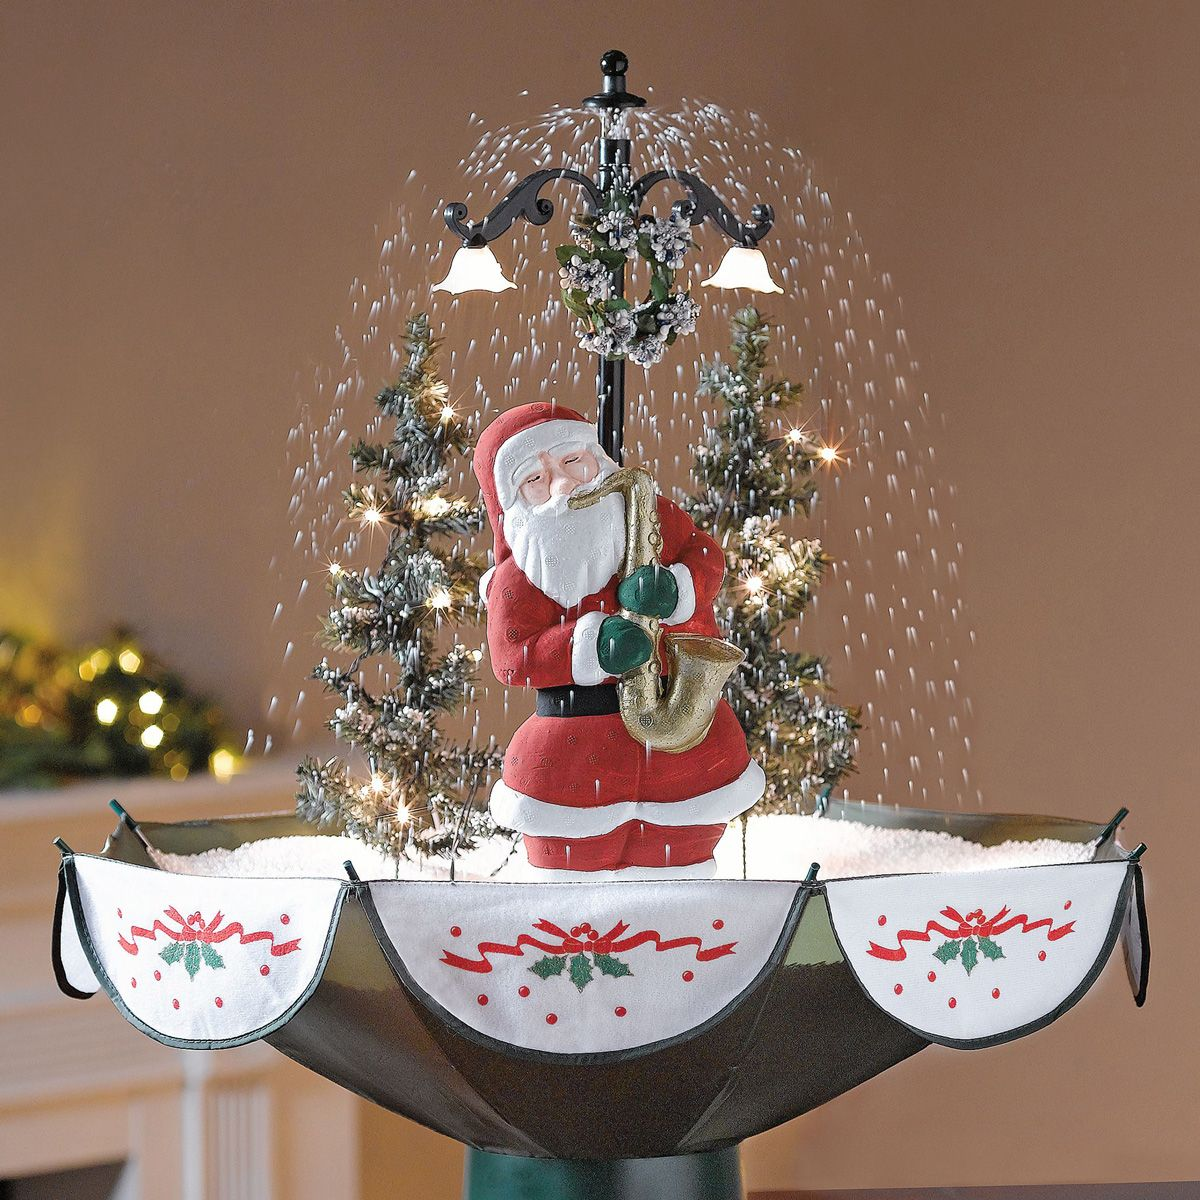 Snowing Christmas Tree.Tabletop Snowing Christmas Tree My Love For Christmas